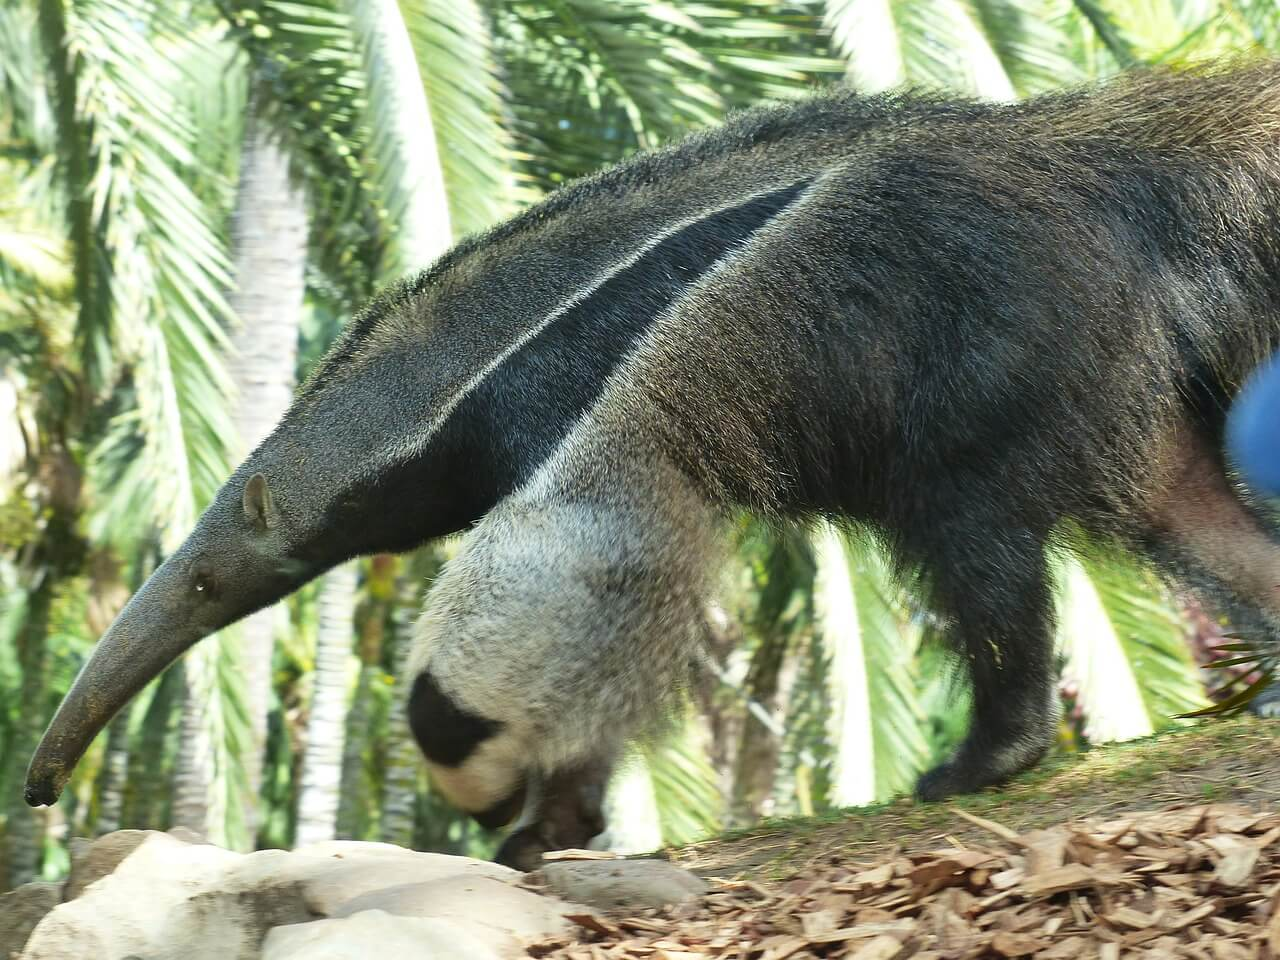 https://pixabay.com/photos/giant-anteater-animal-406712/